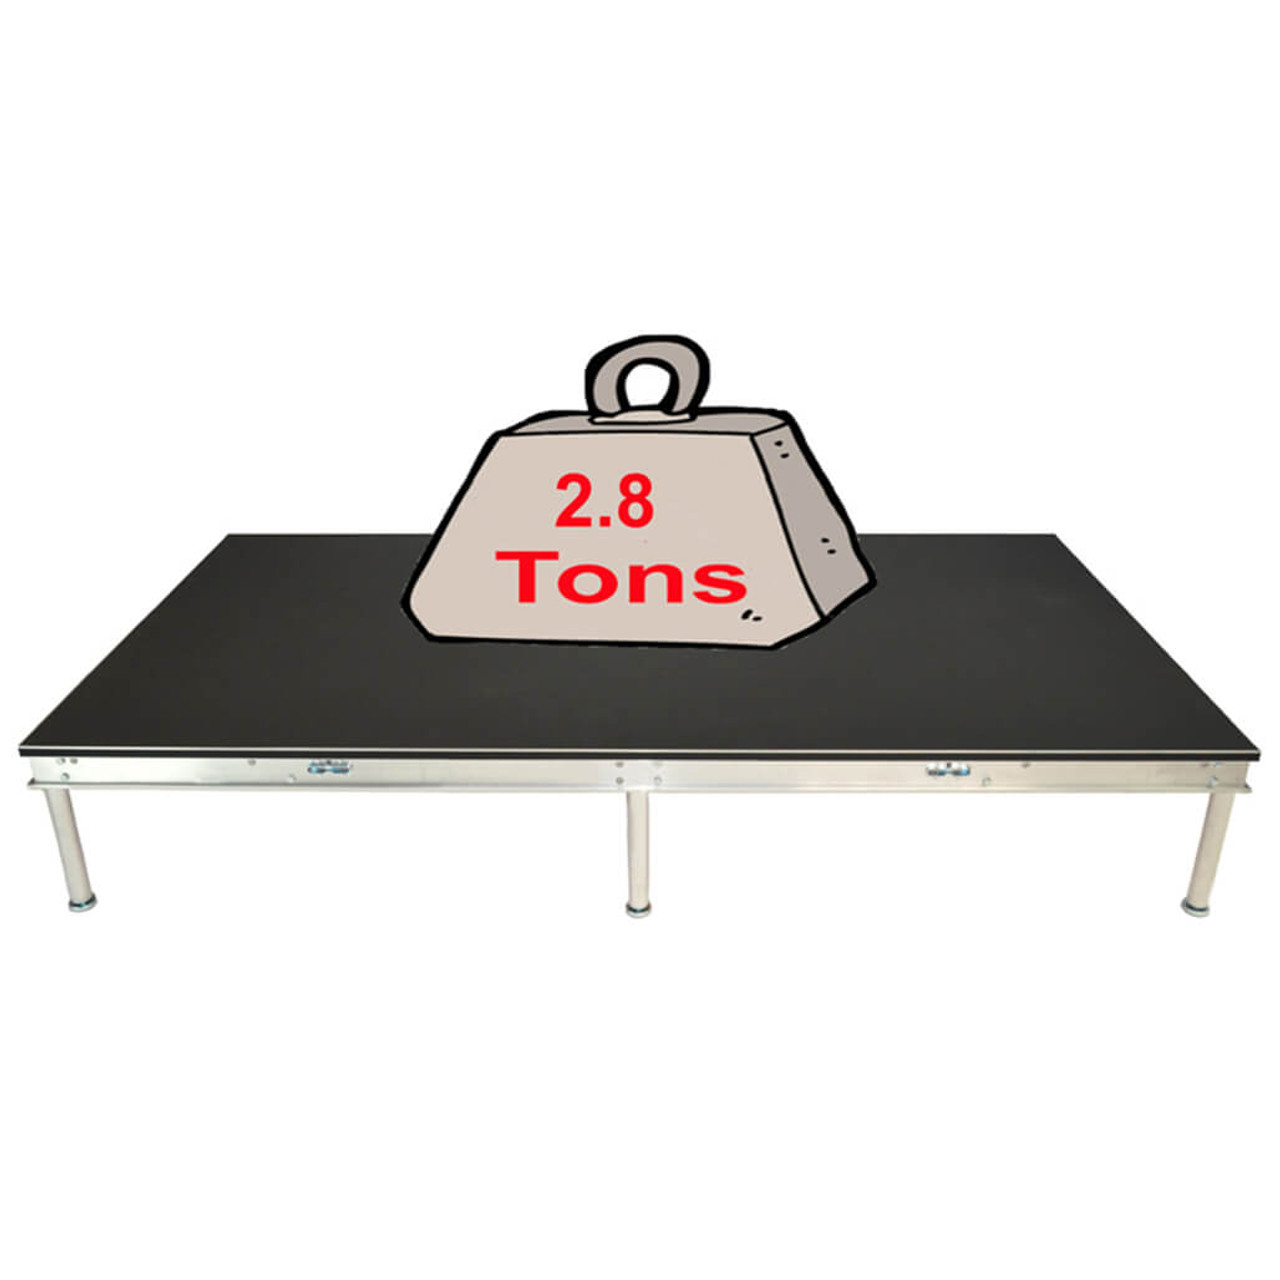 Top rated Quik Stage 4' x 12' High Portable Stage Package with Black Polyvinyl Non-Skid Surface. Additional Heights and Surfaces Available - Holds 2.8 tons per 4 x 8 or 1.4 tons per 4 x 4 when spread out evenly